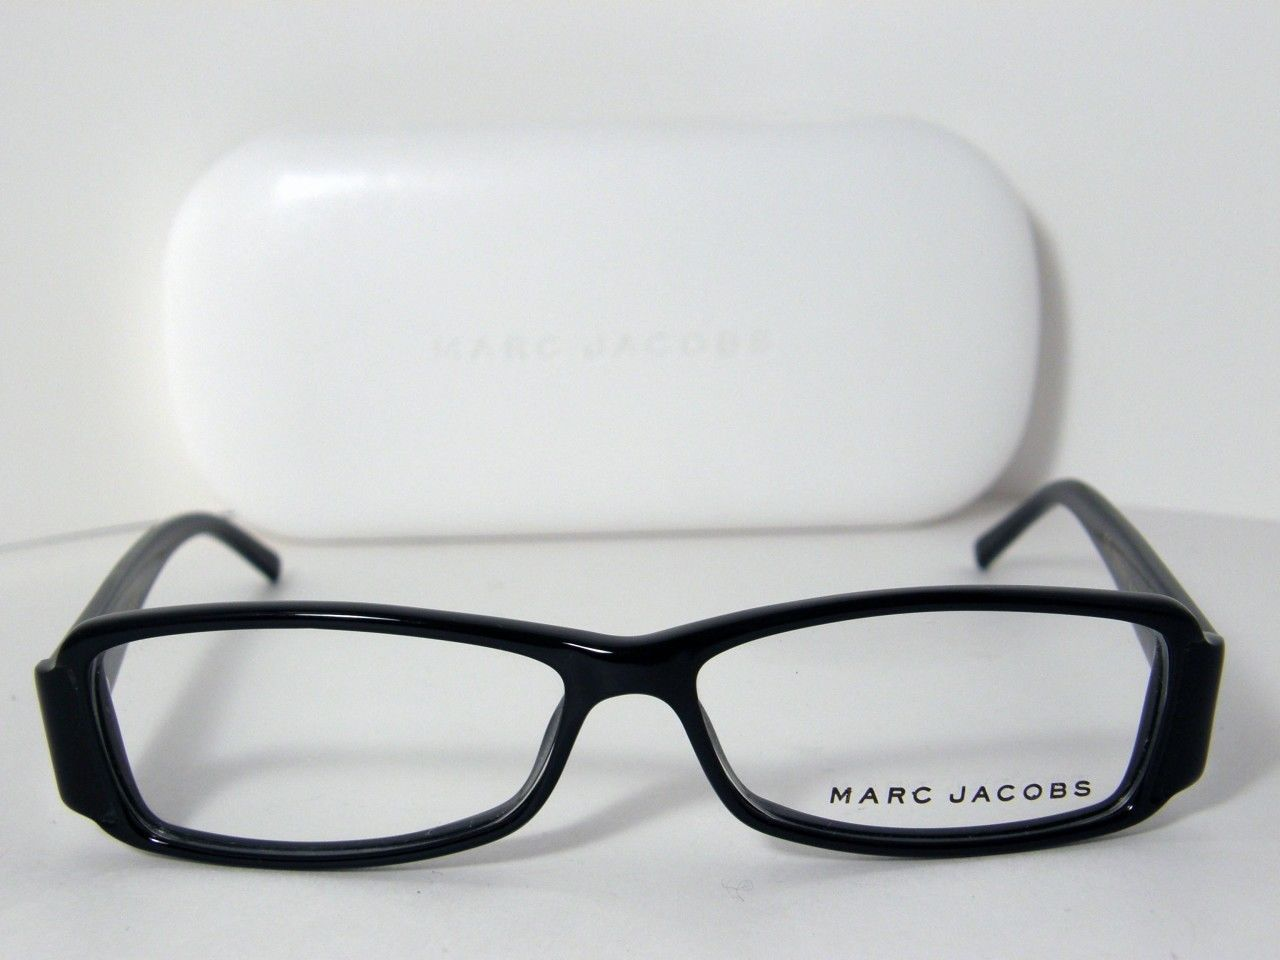 7c80a71a6df Hot New Authentic Marc Jacobs Eyeglasses MJ and 50 similar items